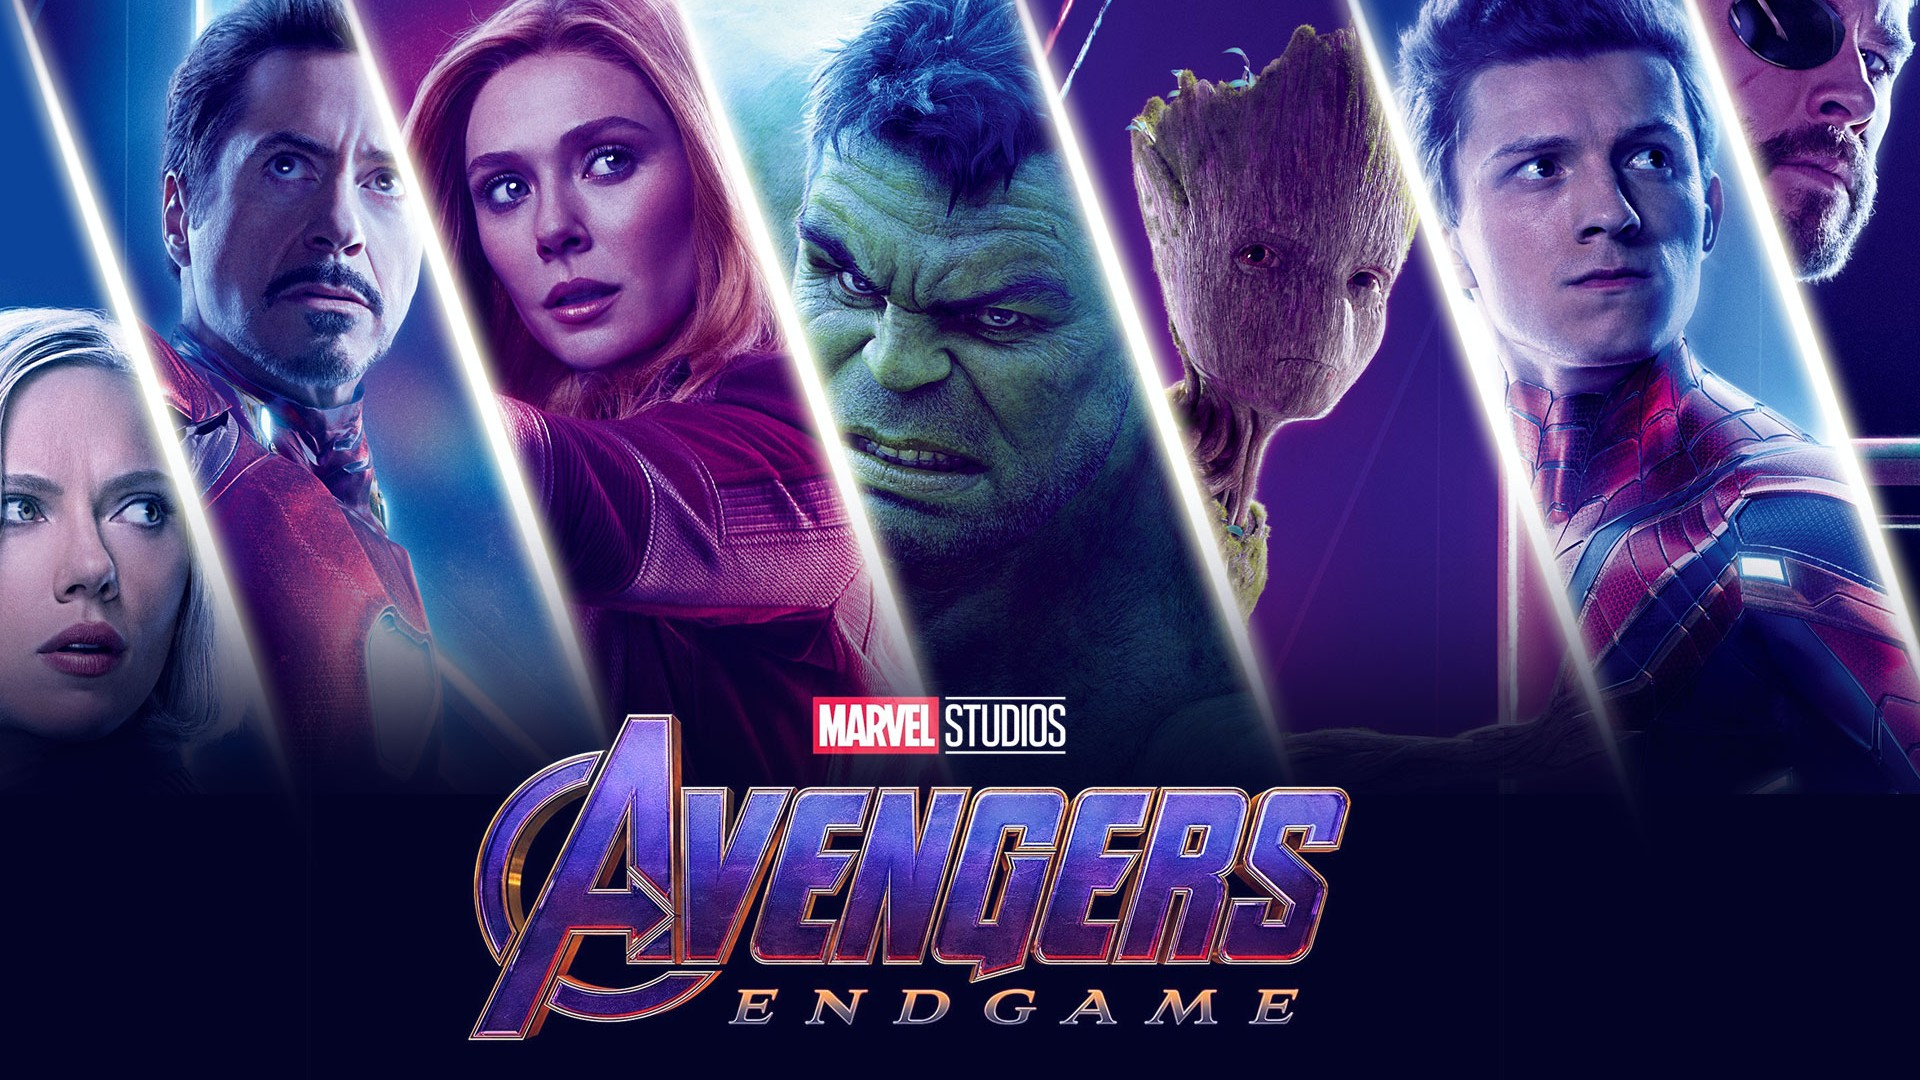 Wallpapers Avengers Endgame 2019 Movie Poster Wallpaper HD 1920x1080